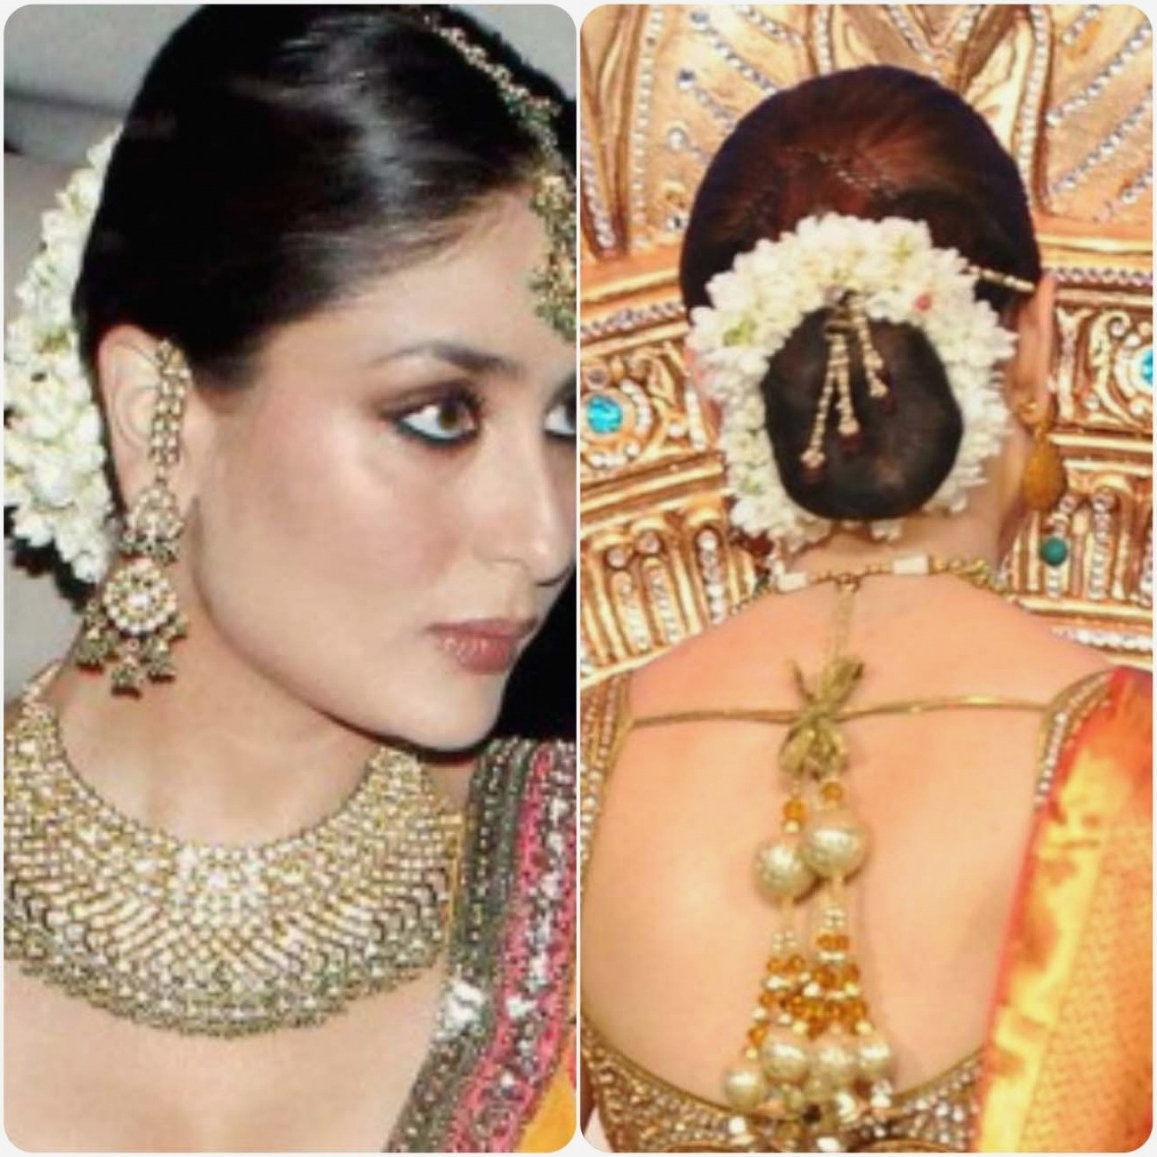 Trendy Indian Wedding Hairstyles Intended For Wedding Hairstyles : Indian Bridal Wedding Hairstyles New Hairstyle (View 12 of 15)